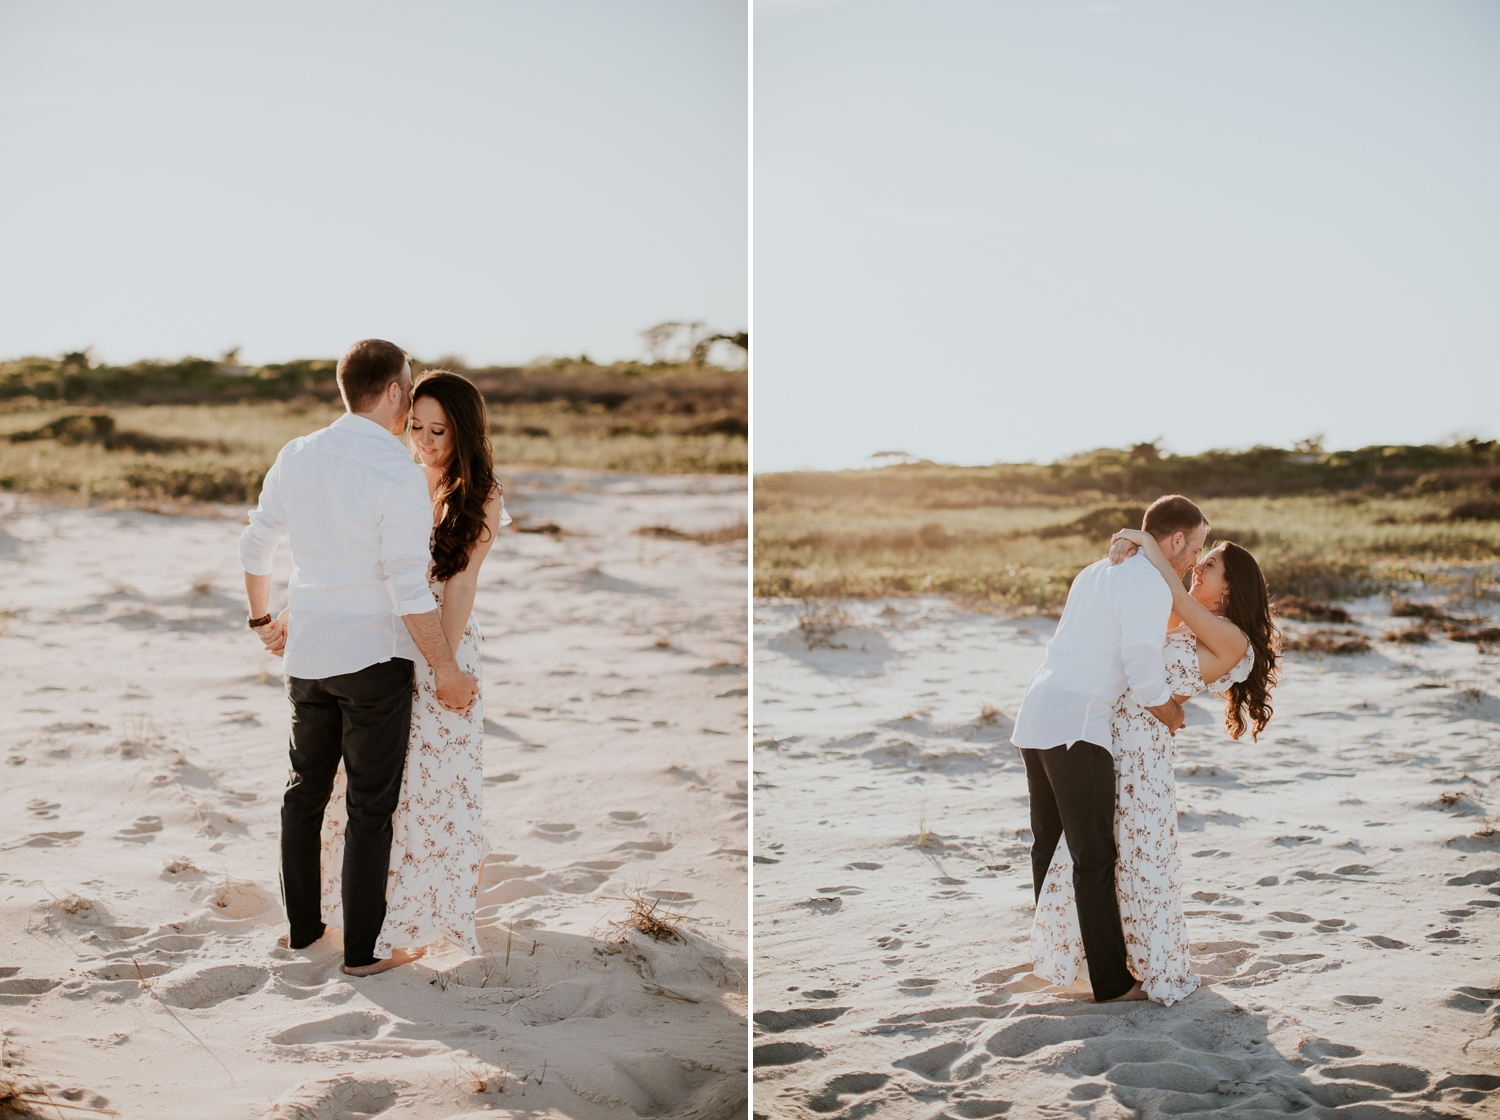 ho-hum-beach-boat-ride-engagement-photography-bellport-new-york 11.jpg